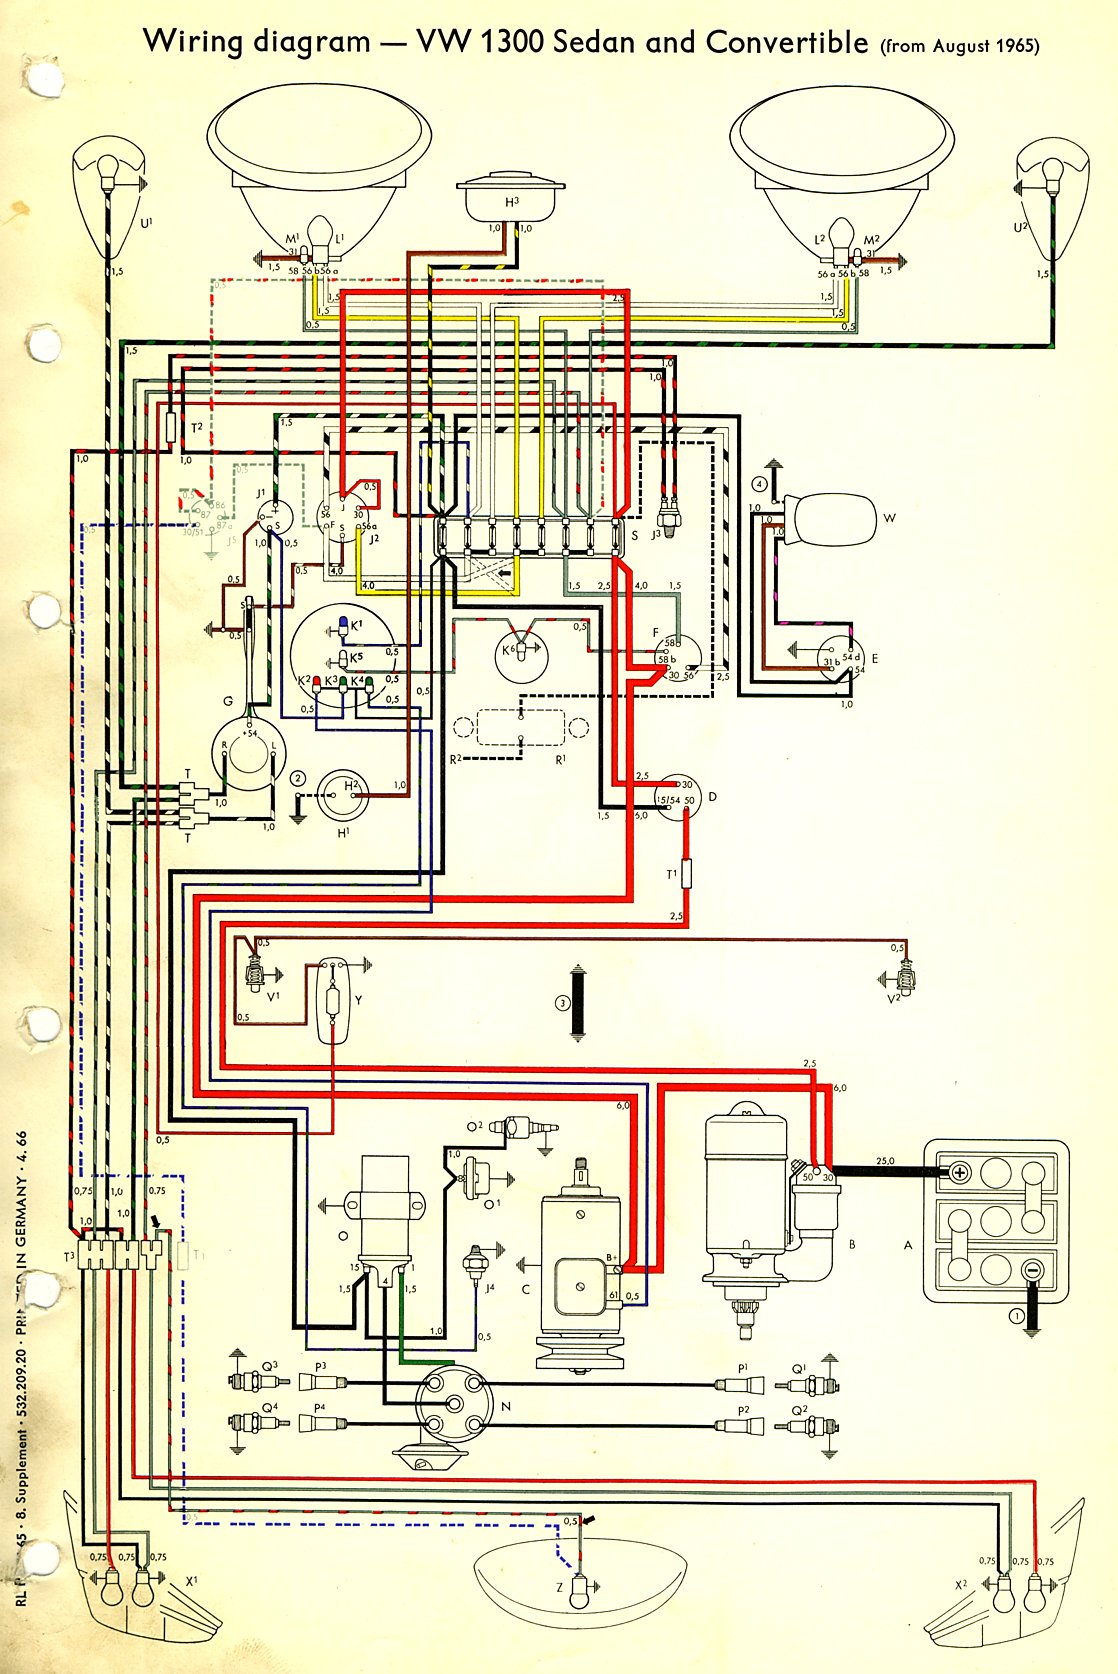 vw wiring diagram symbols wiring info u2022 rh cardsbox co 1976 vw bus wiring diagram 1971 VW Bus Wiring Diagram